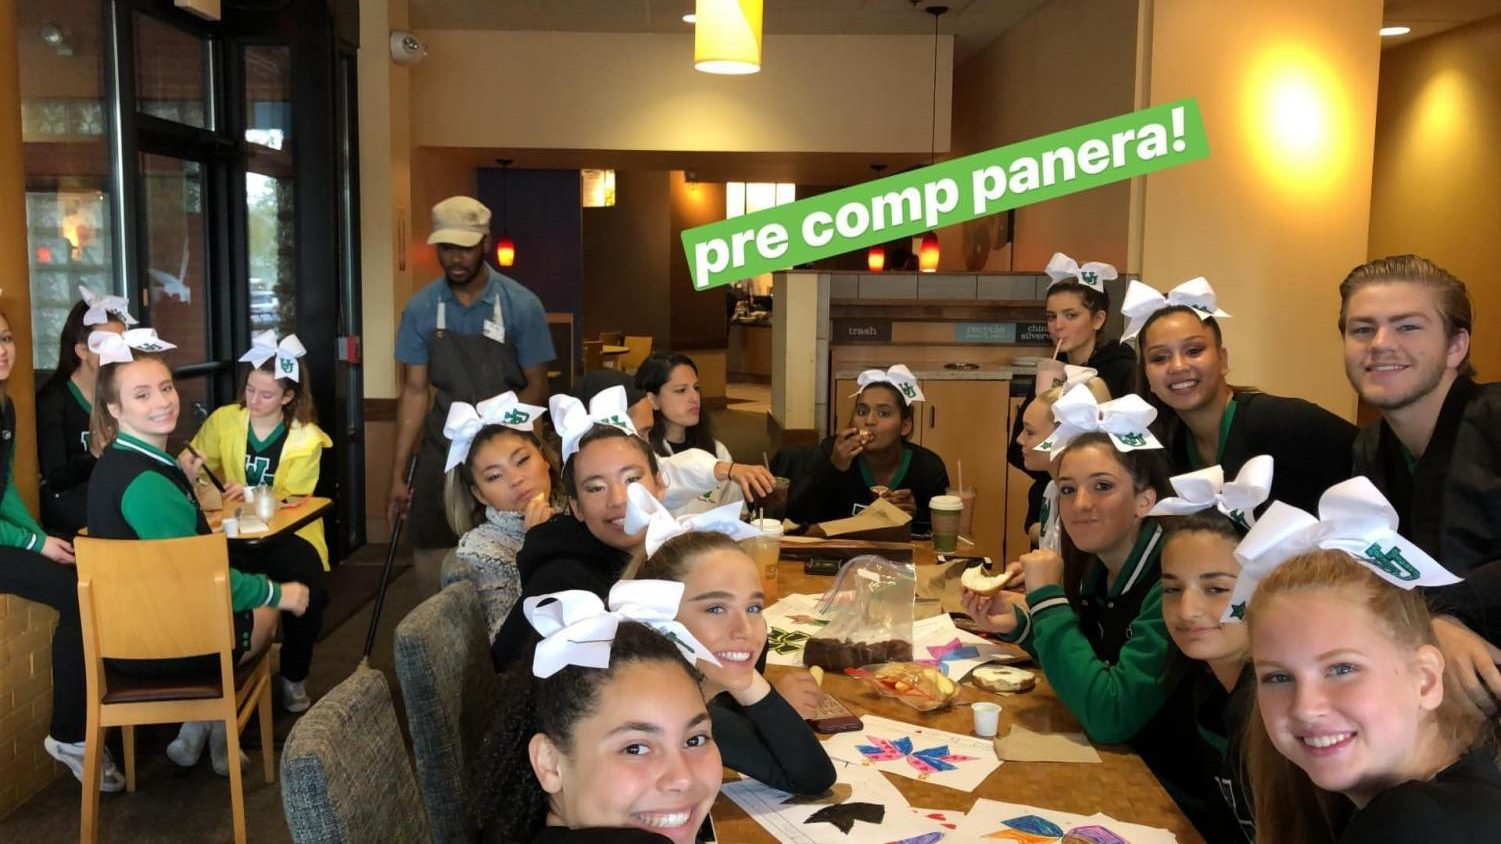 The varsity cheer team goes out for a team lunch with time to spare before they compete. Bonding with your teammates helps alleviate the stress level and make lasting relationships, which play an important role on the mat/field.